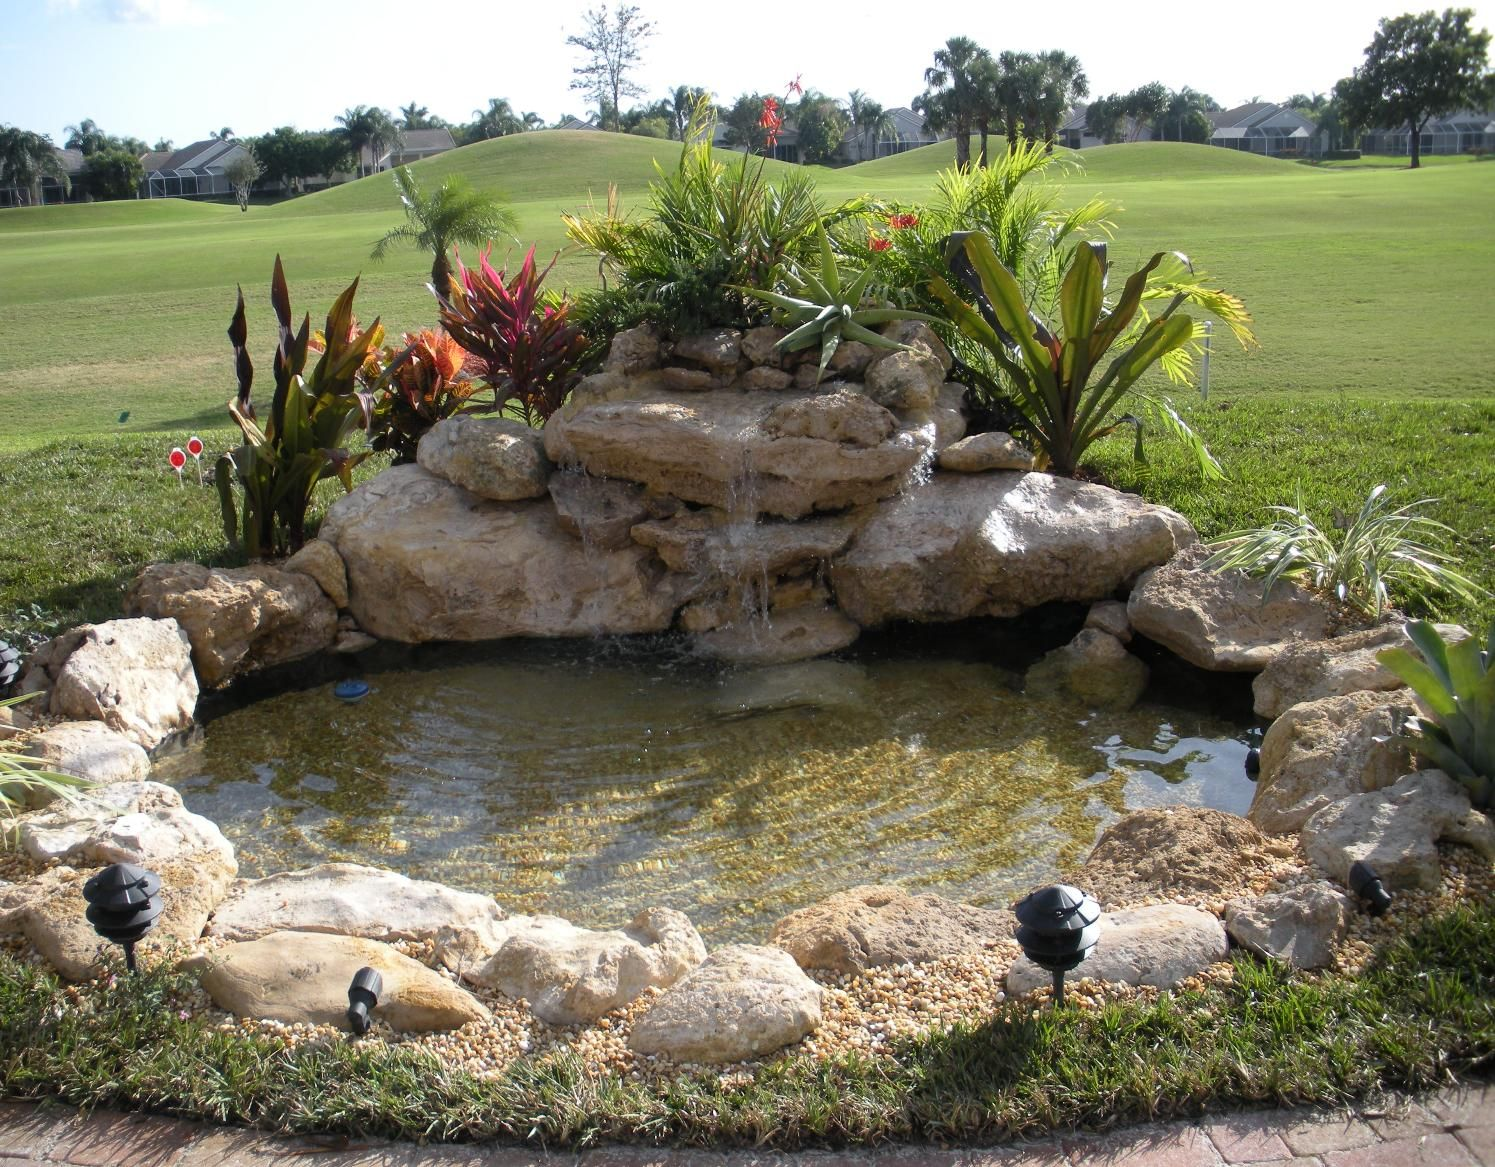 Landscaping waterfalls and fish ponds ways to maintain for Outside fish pond